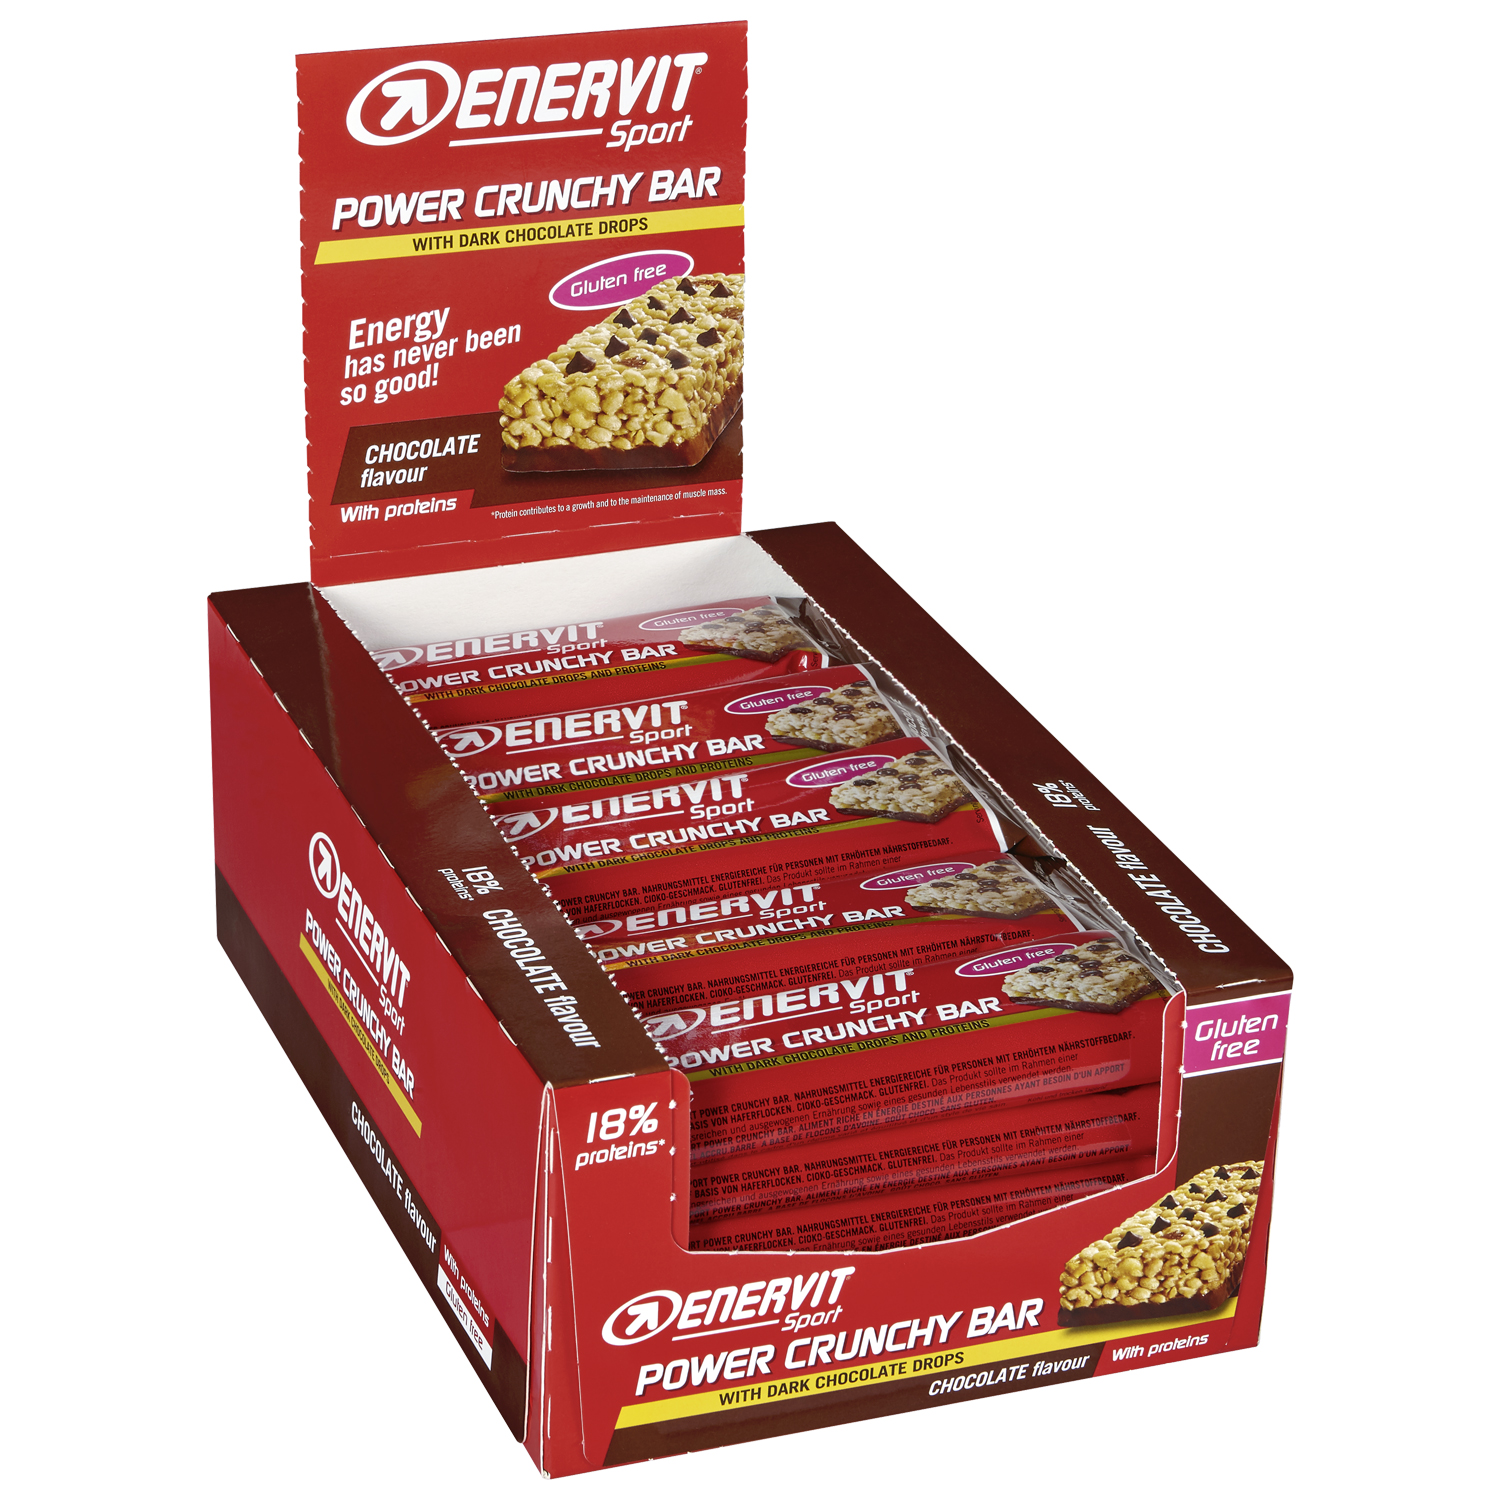 Power Crunchy Bar 25er Box